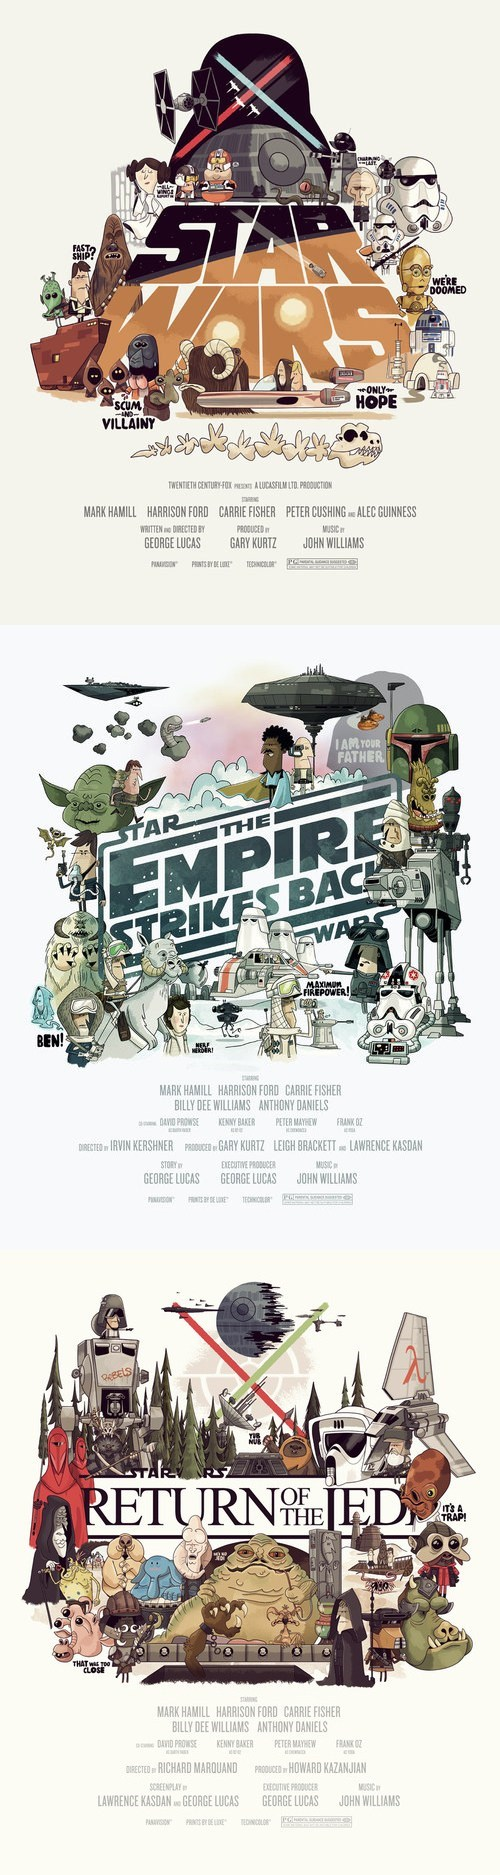 illustrated,star wars,posters,A New Hope,return of the jedi,characters,cartoons,hand drawn,Empire Strikes Back